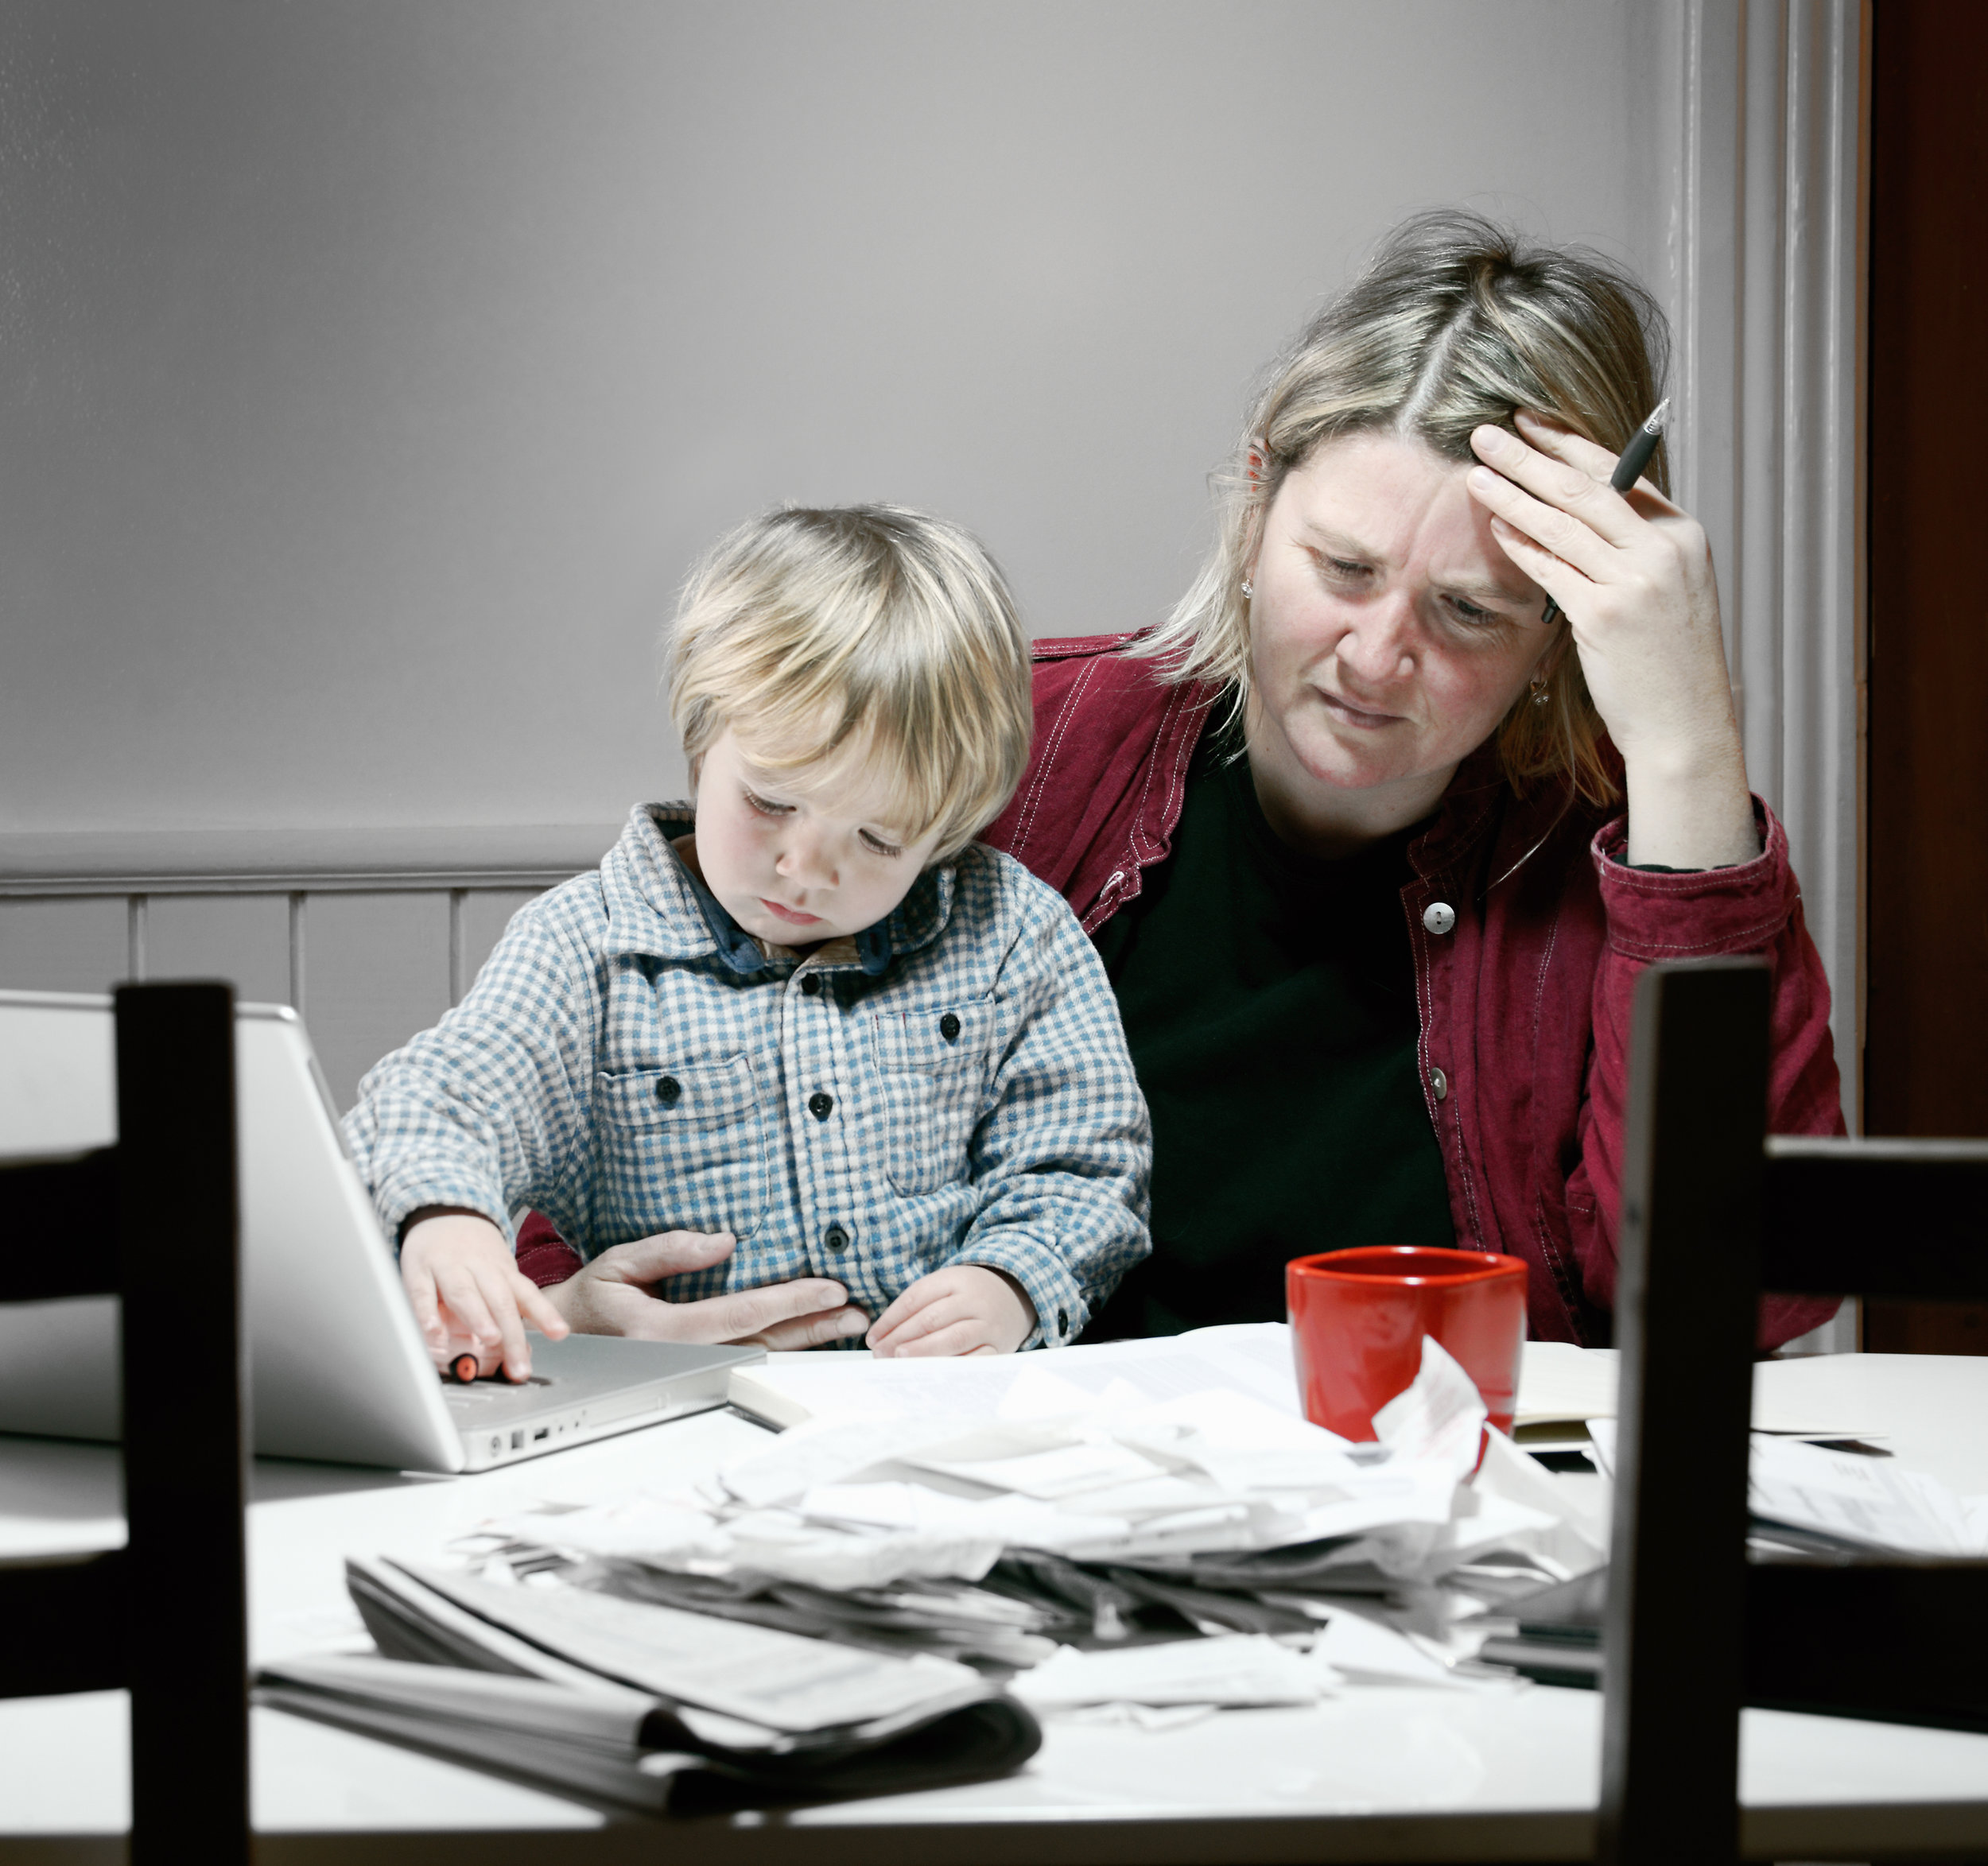 stock-photo-15256471-stressed-and-tired-mother-working-on-financial-issues_tint.jpg